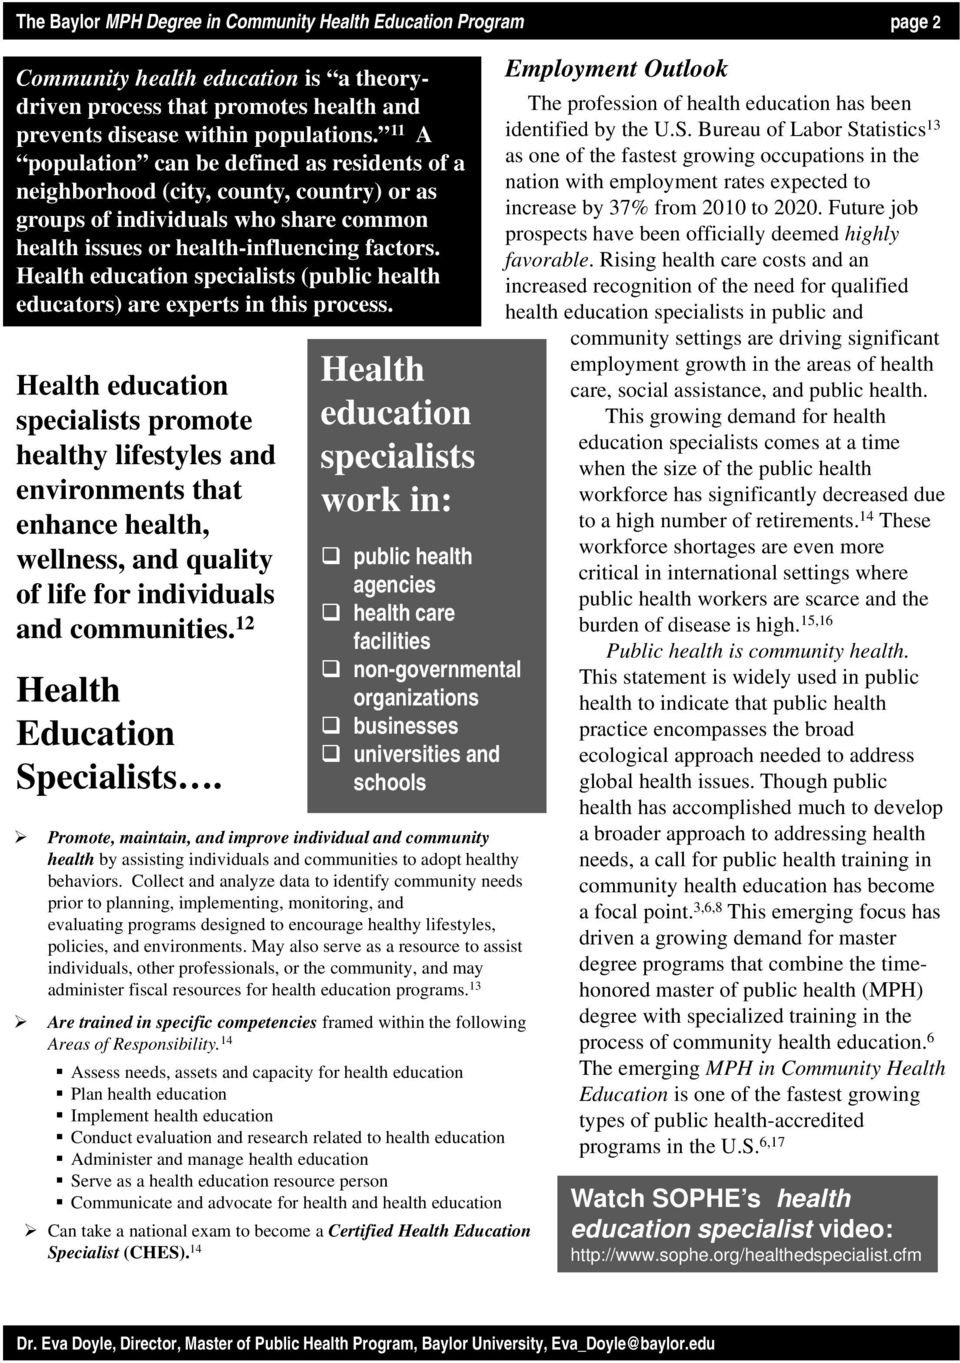 Health education specialists (public health educators) are experts in this process.